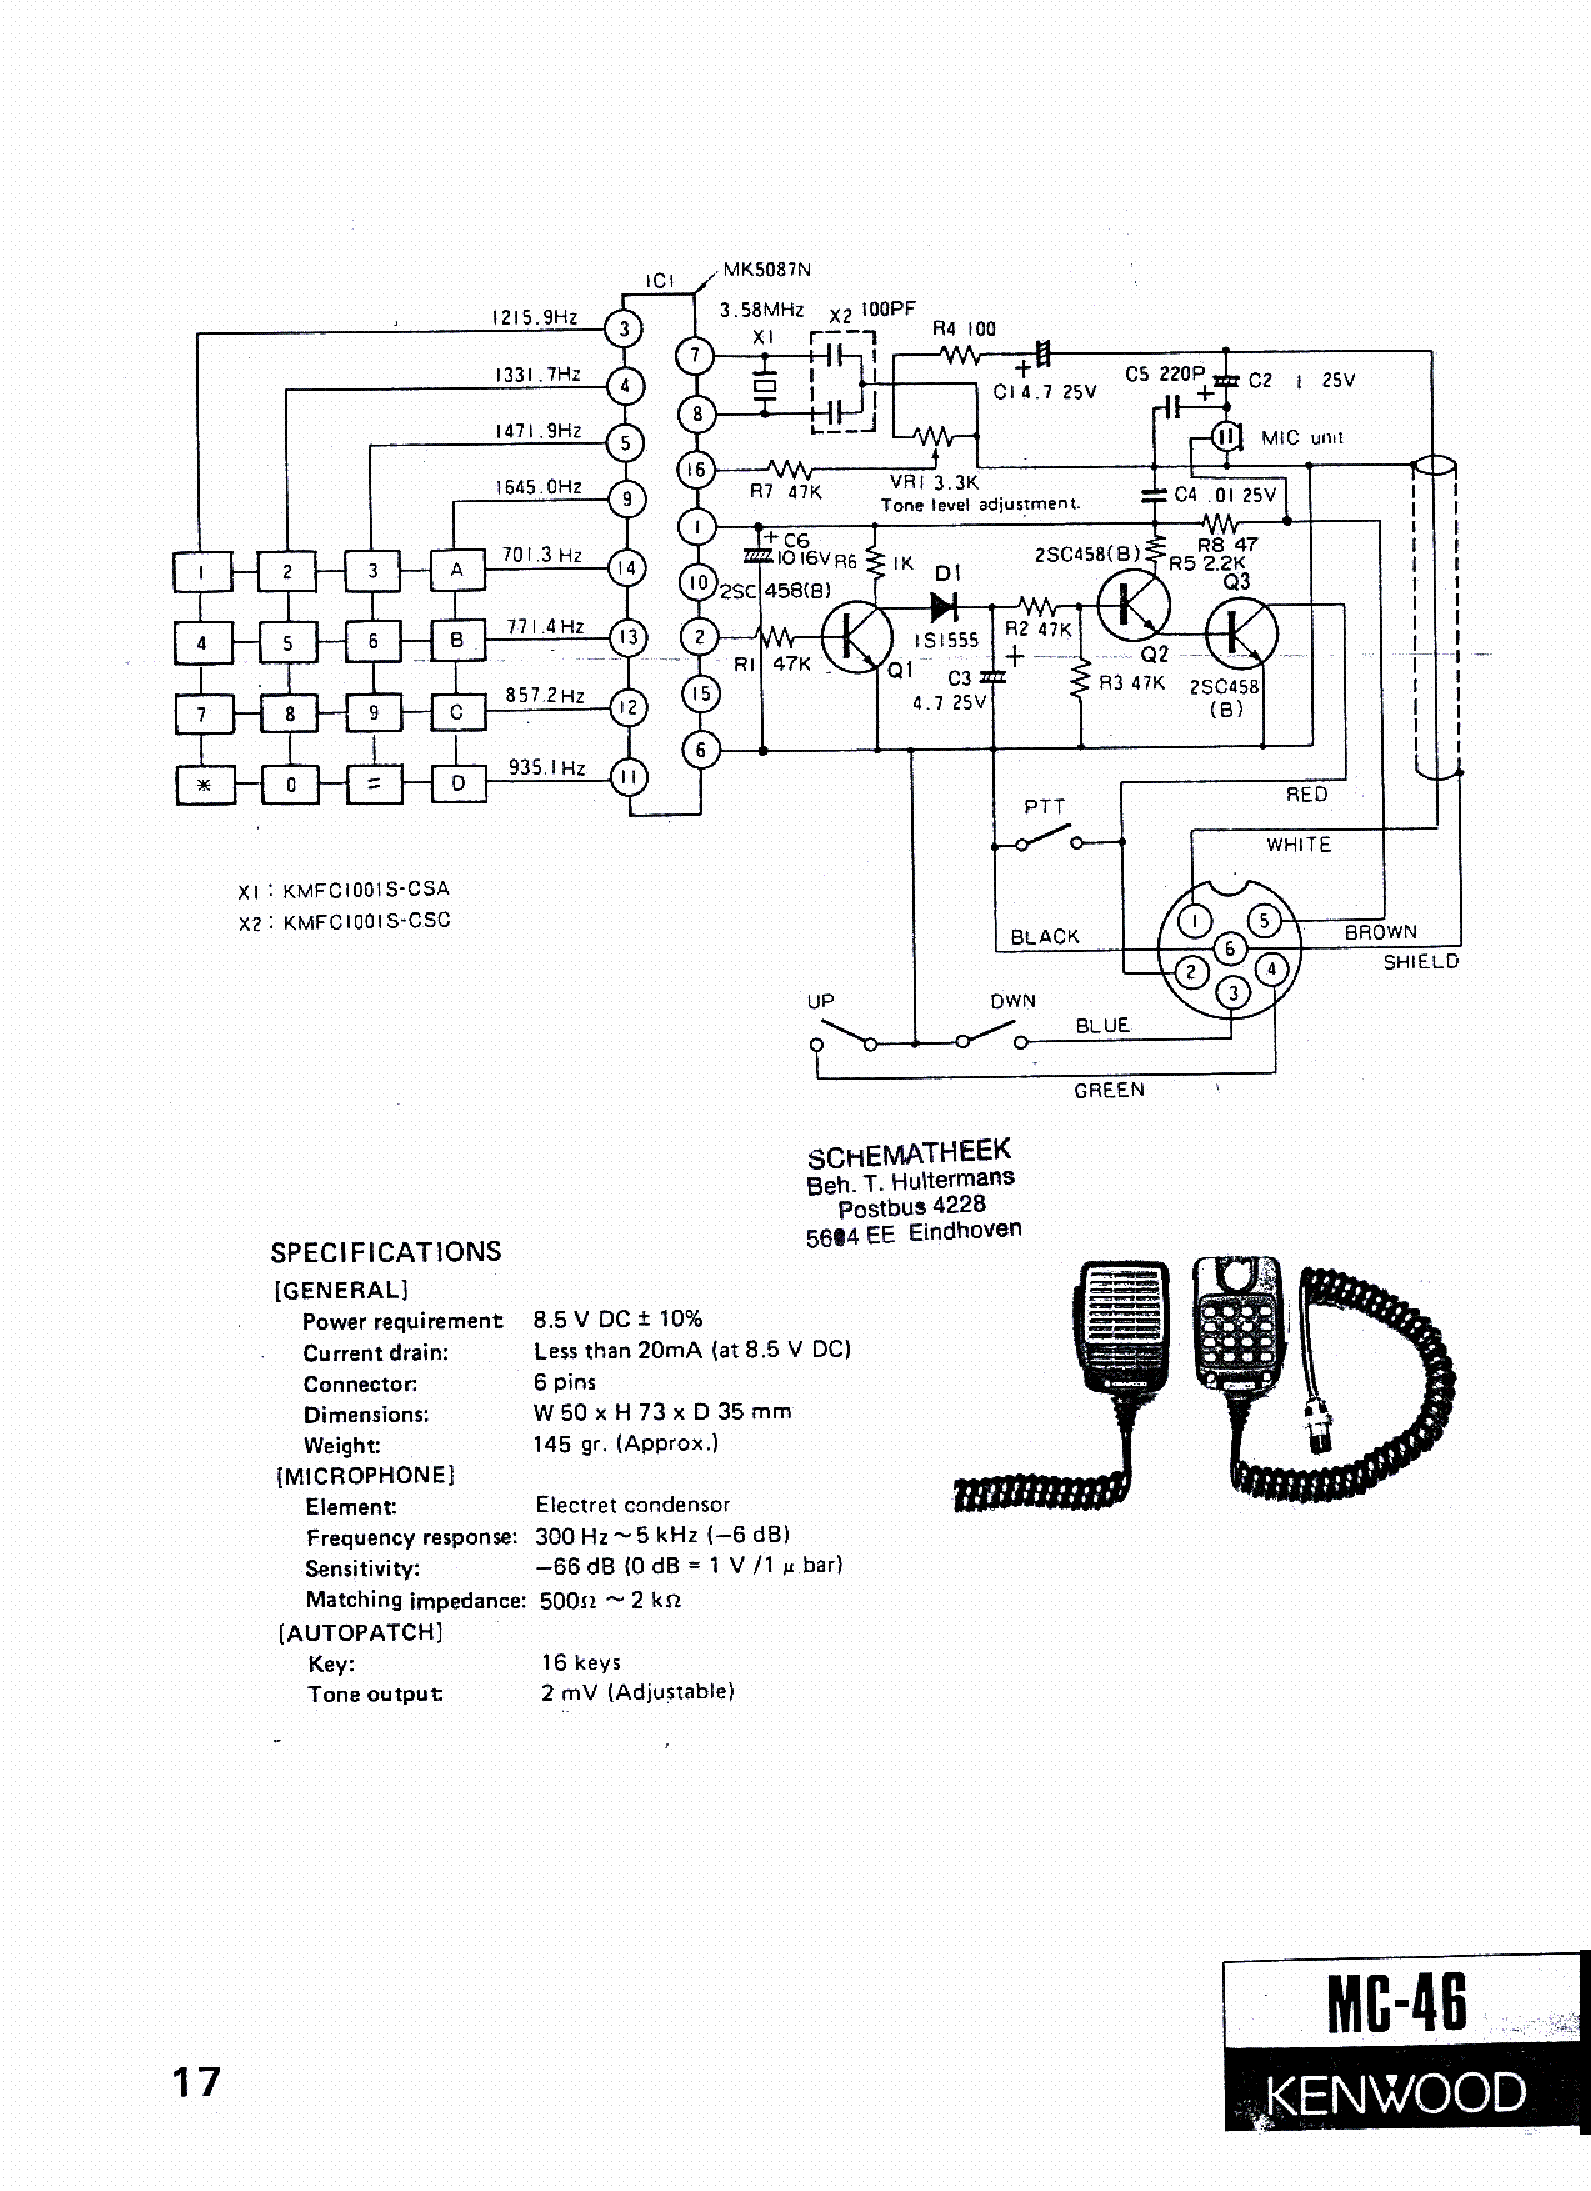 Kenwood Mc 46 Sch Service Manual Download, Schematics, Eeprom Kenwood Radio  Diagram Kenwood Mc 50 Wiring Diagram